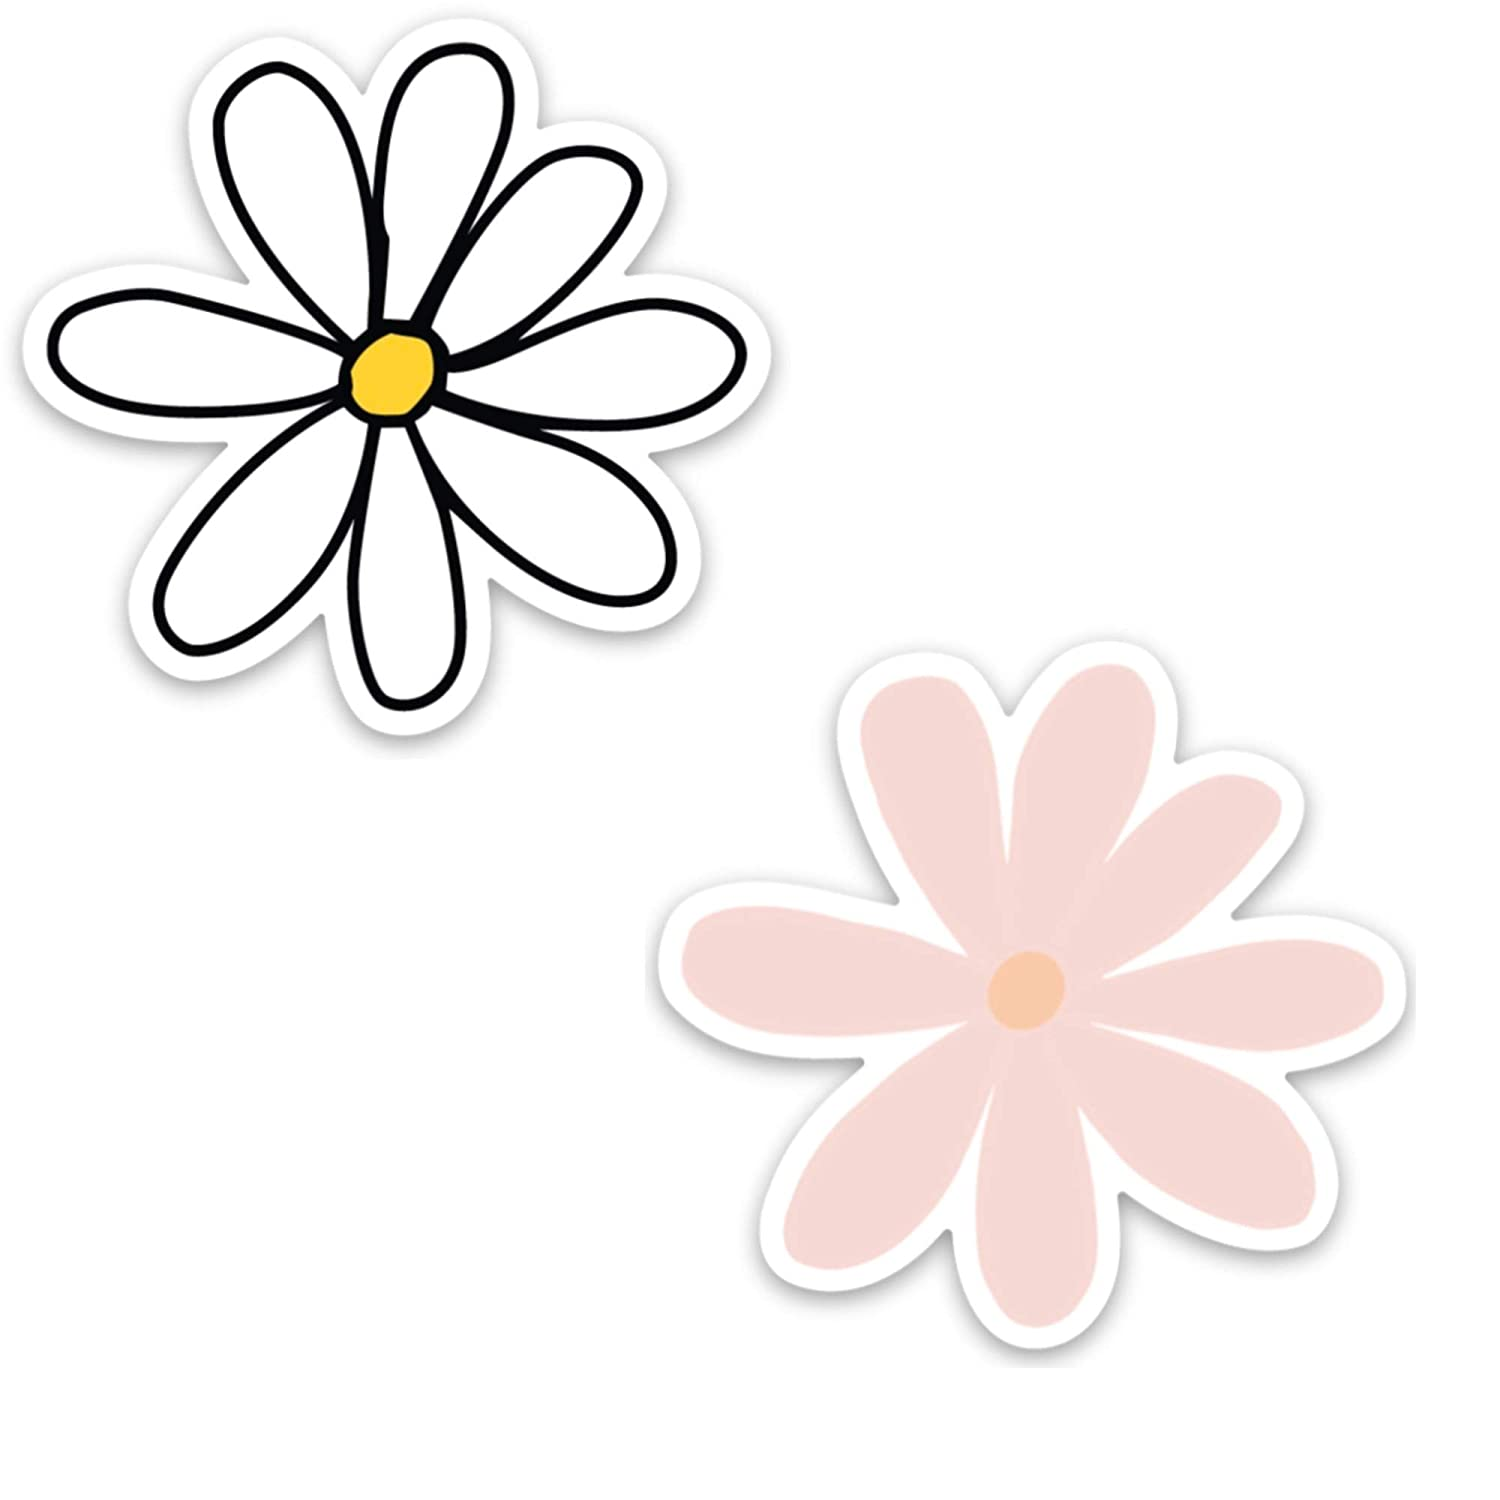 Daisy sticker for a hydro flask, laptop, or water bottle | Waterproof, vinyl decals | Flower stickers